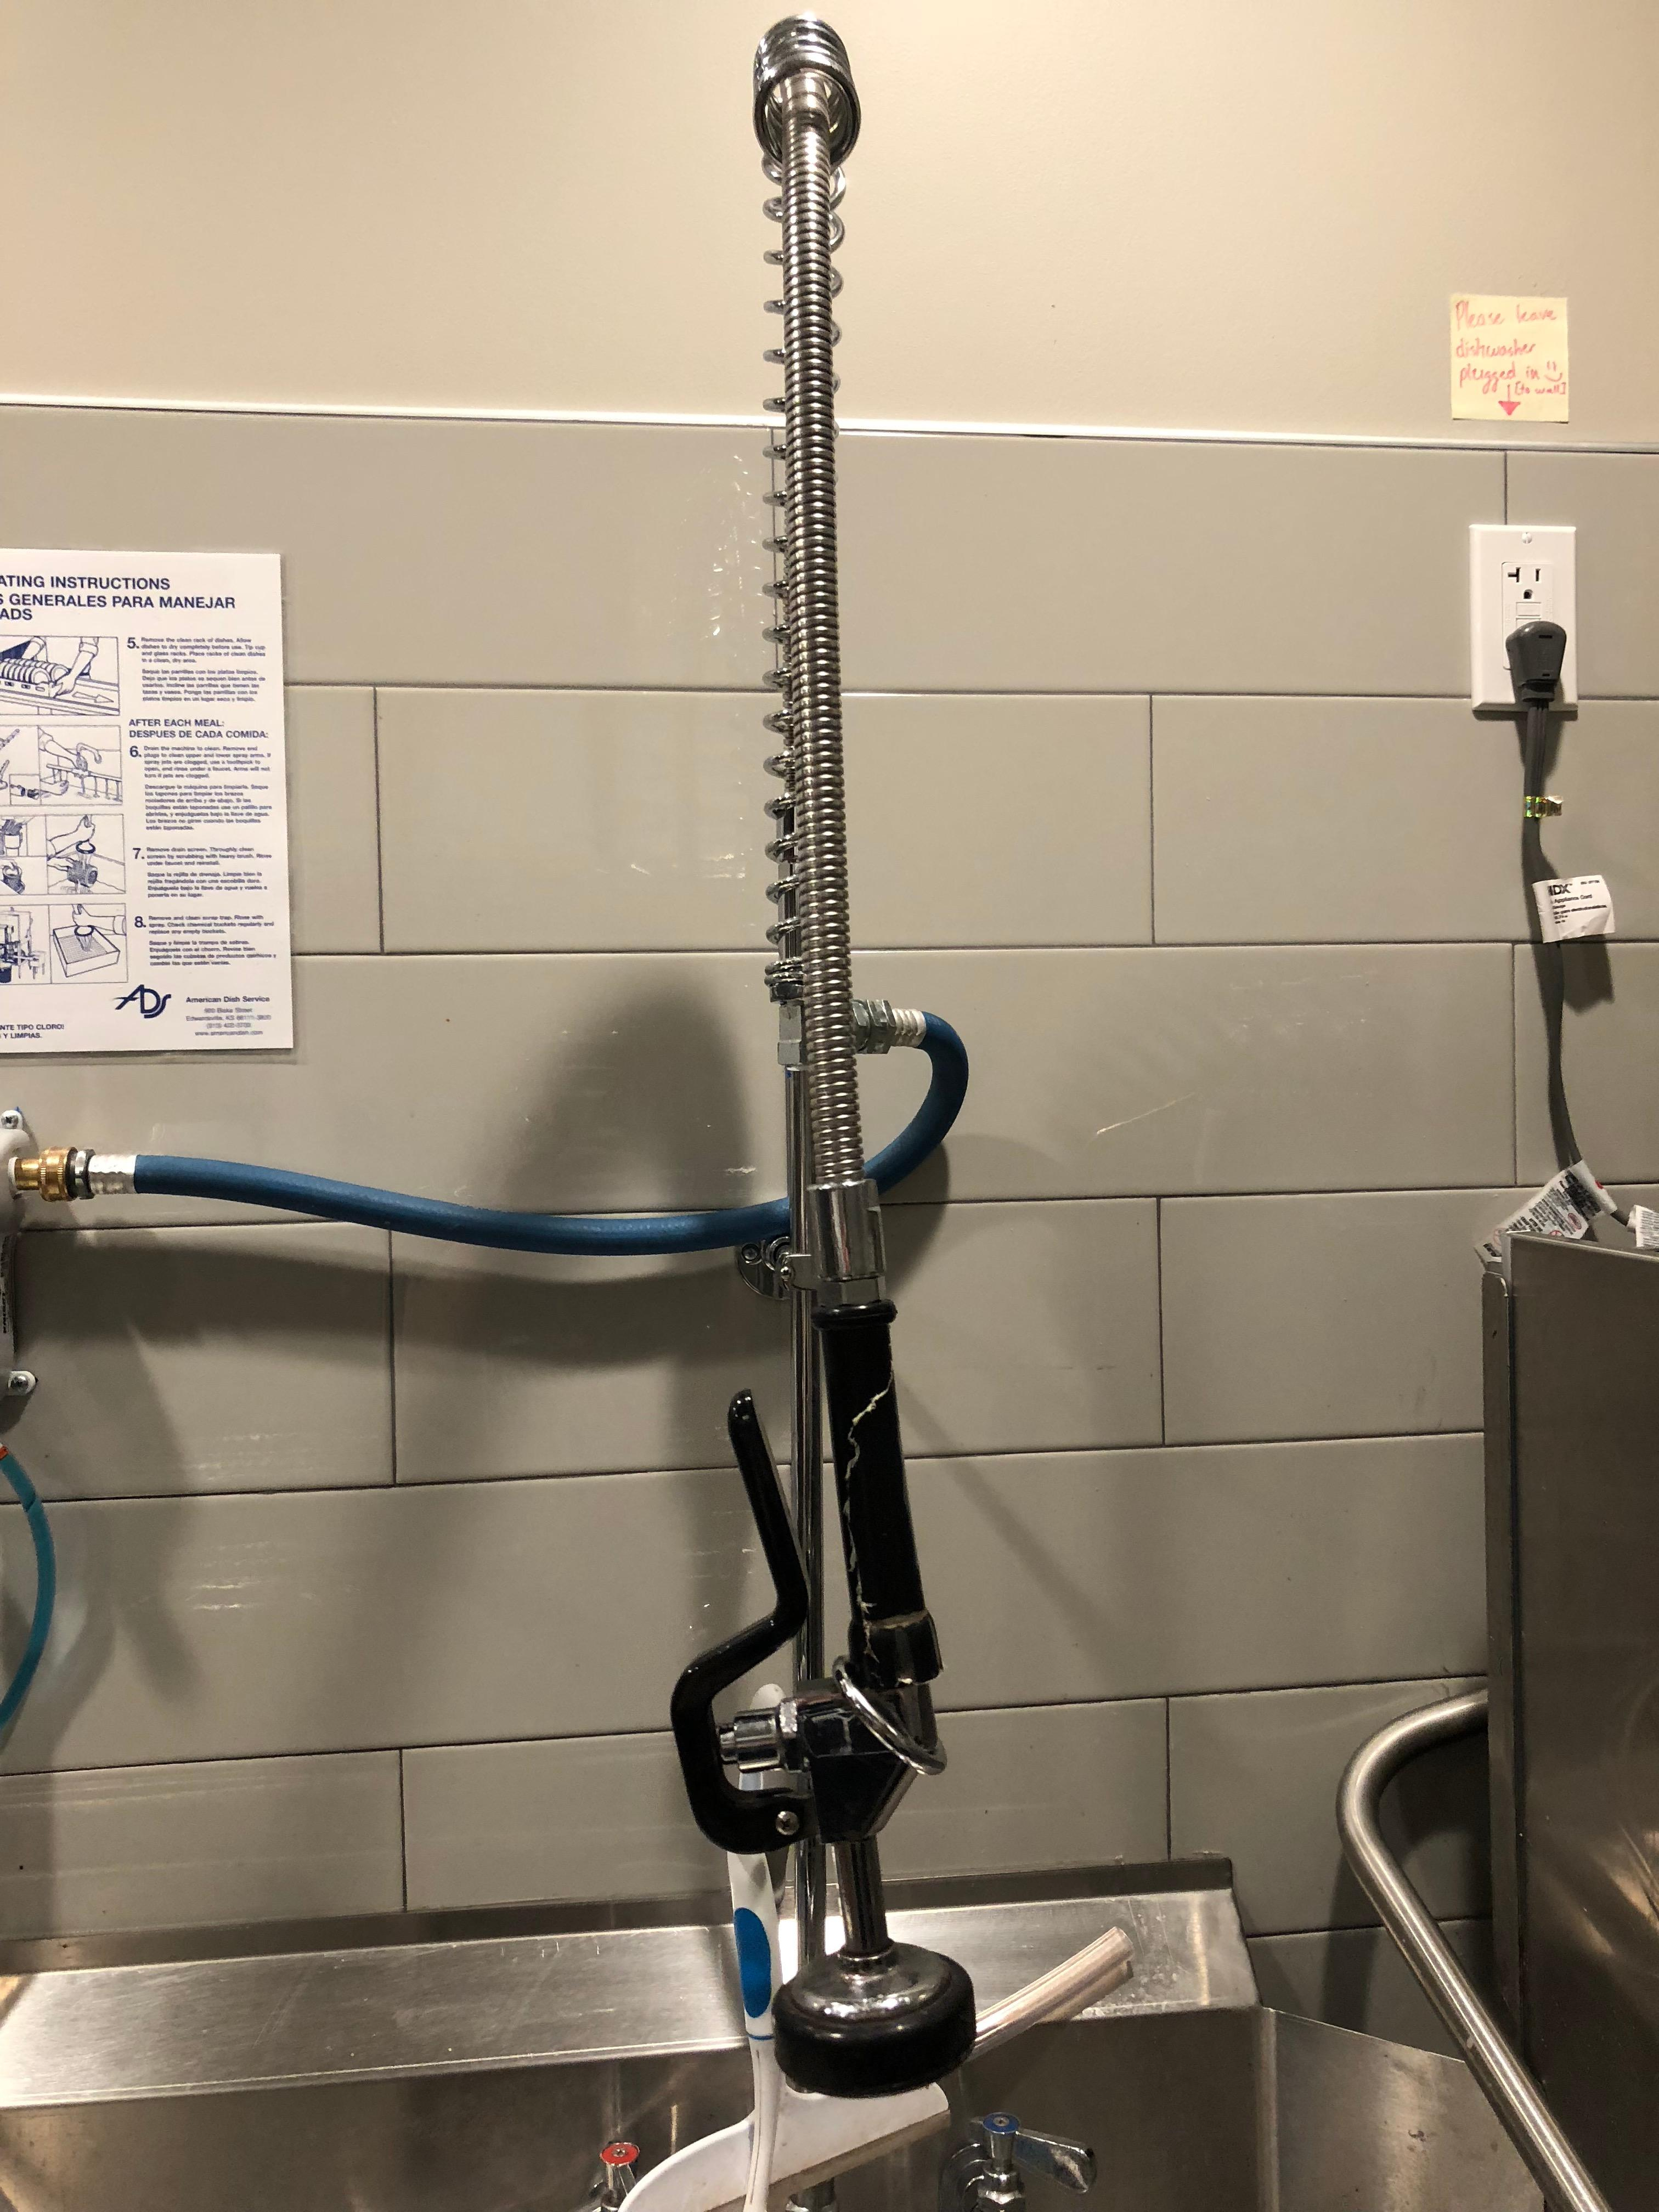 Regency 142 Gpm Chrome Plated Wall Mounted Pre Rinse Faucet With 8 Jets Hand Shower Cupc Further Pallet Jack Parts Diagram Centers